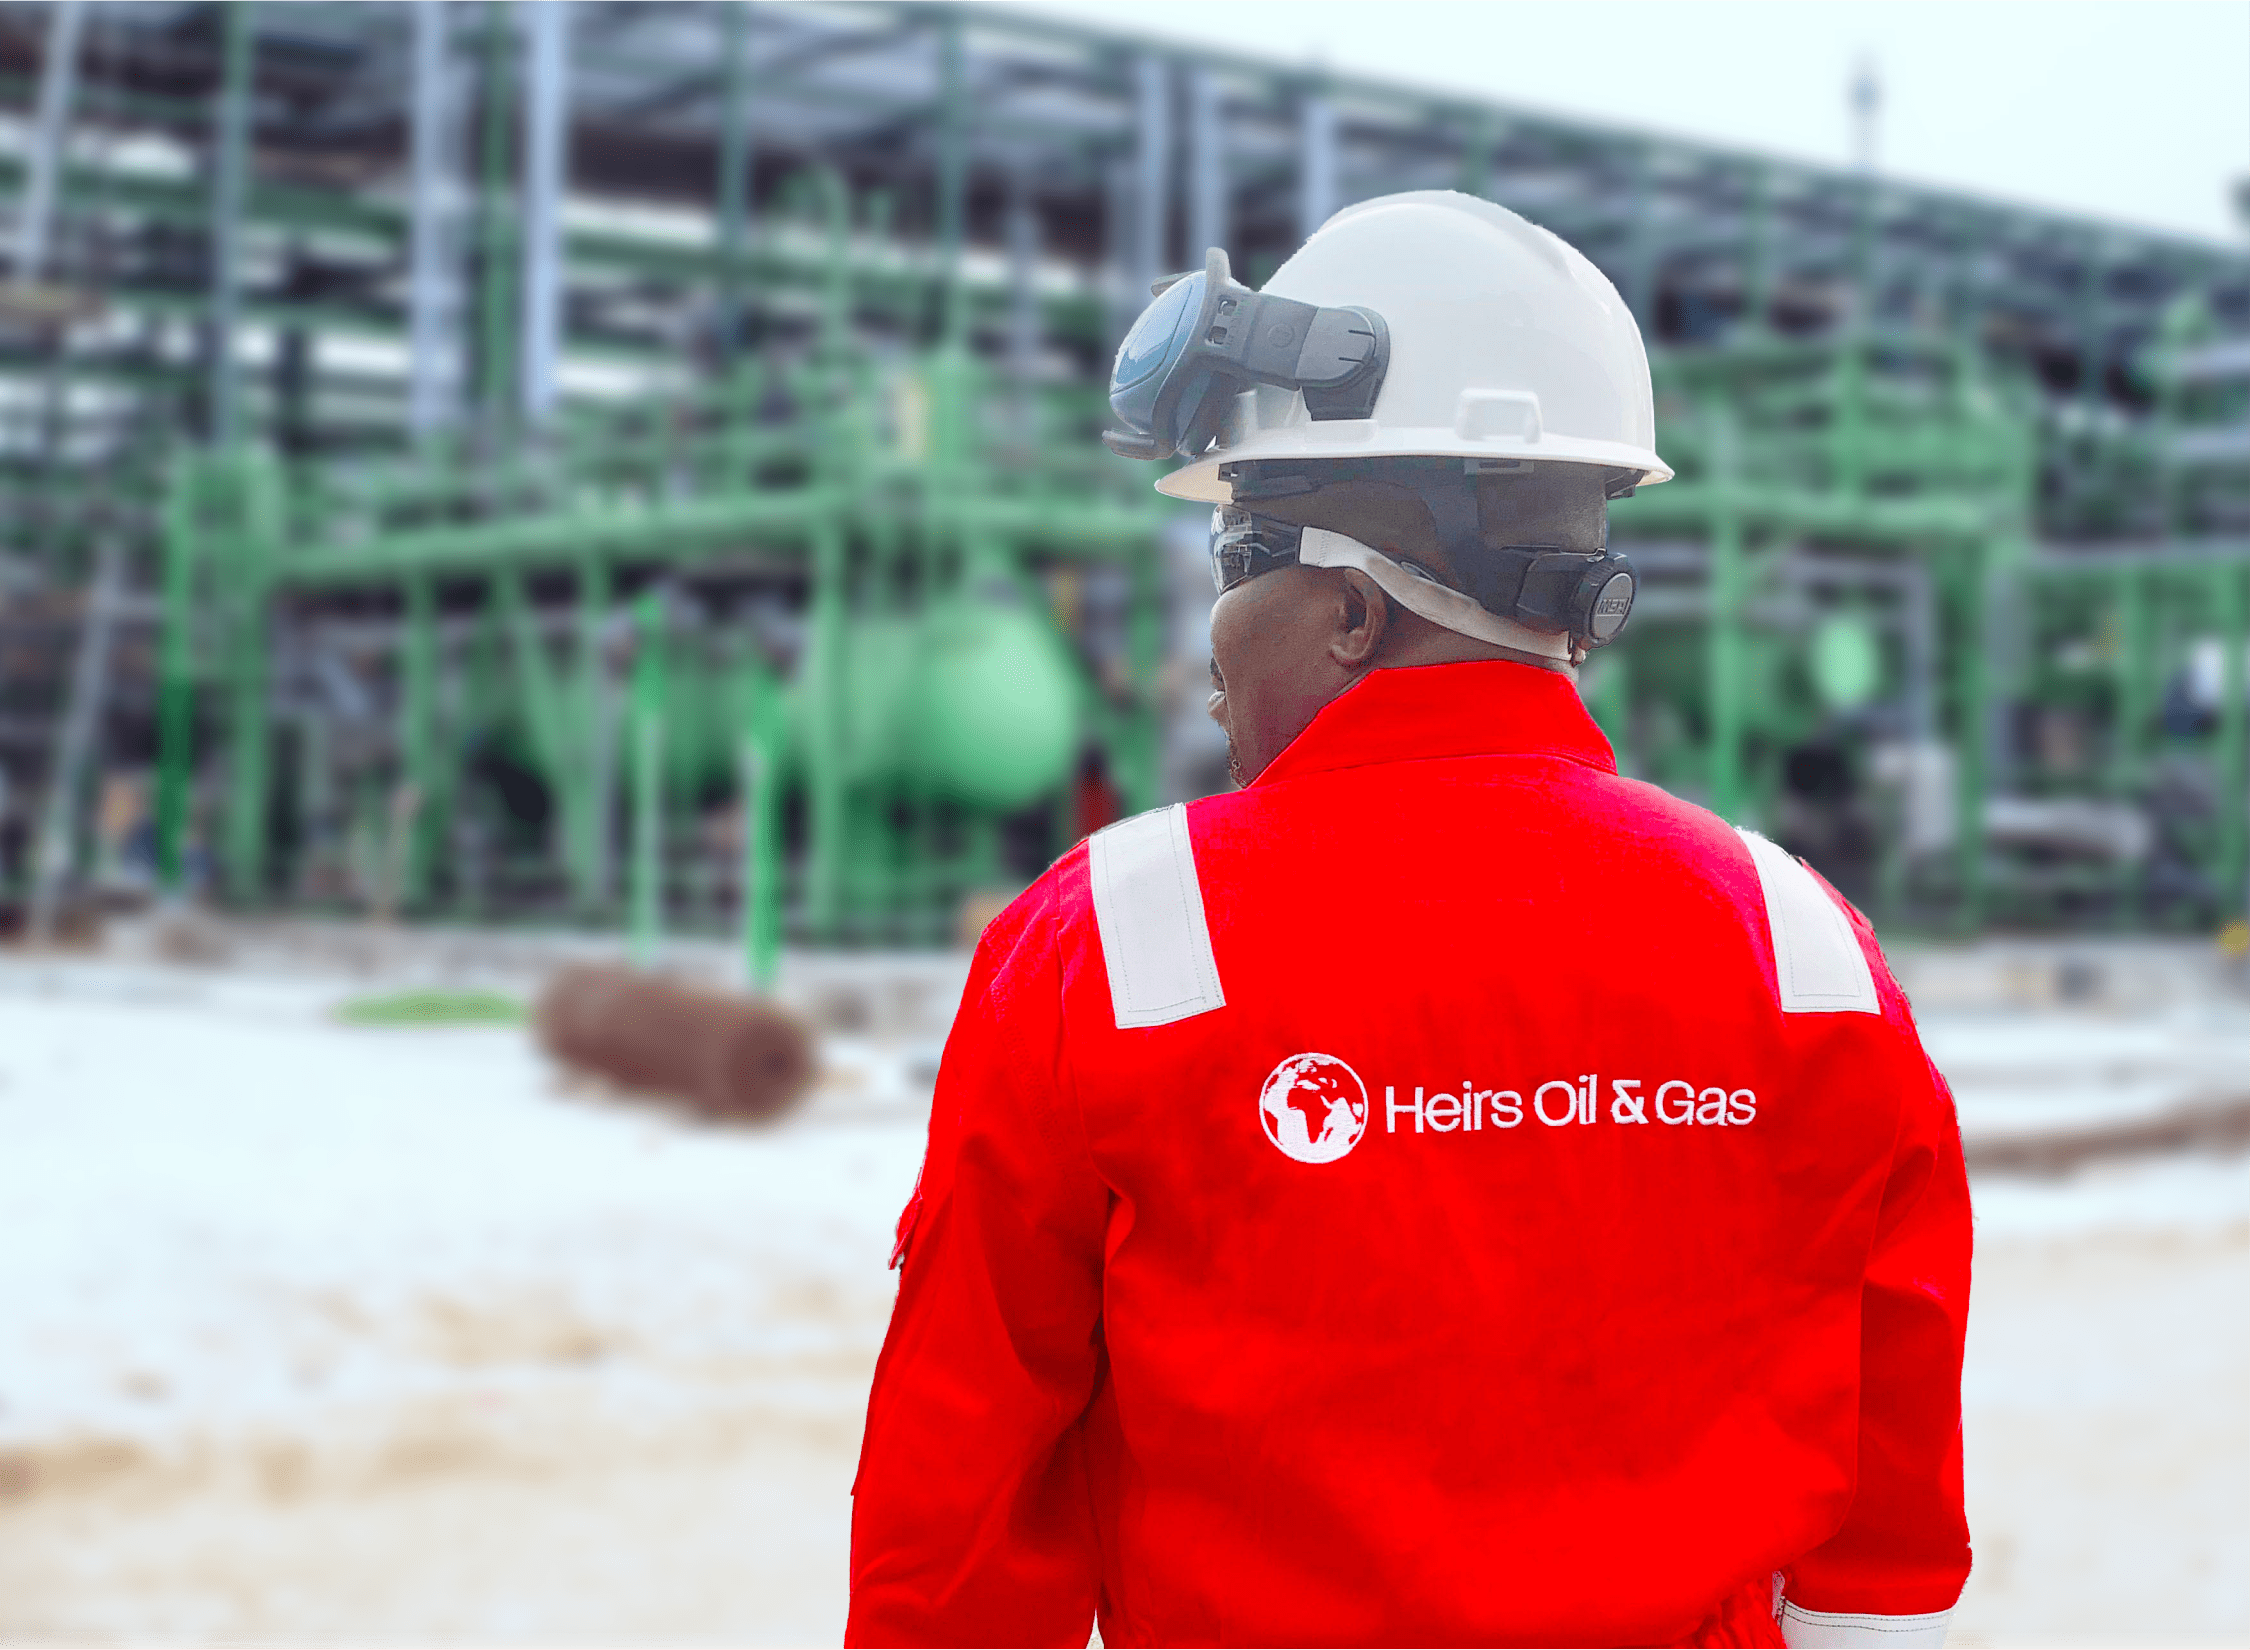 The Future of Oil & Gas in Nigeria: Renewed obligations from the private sector